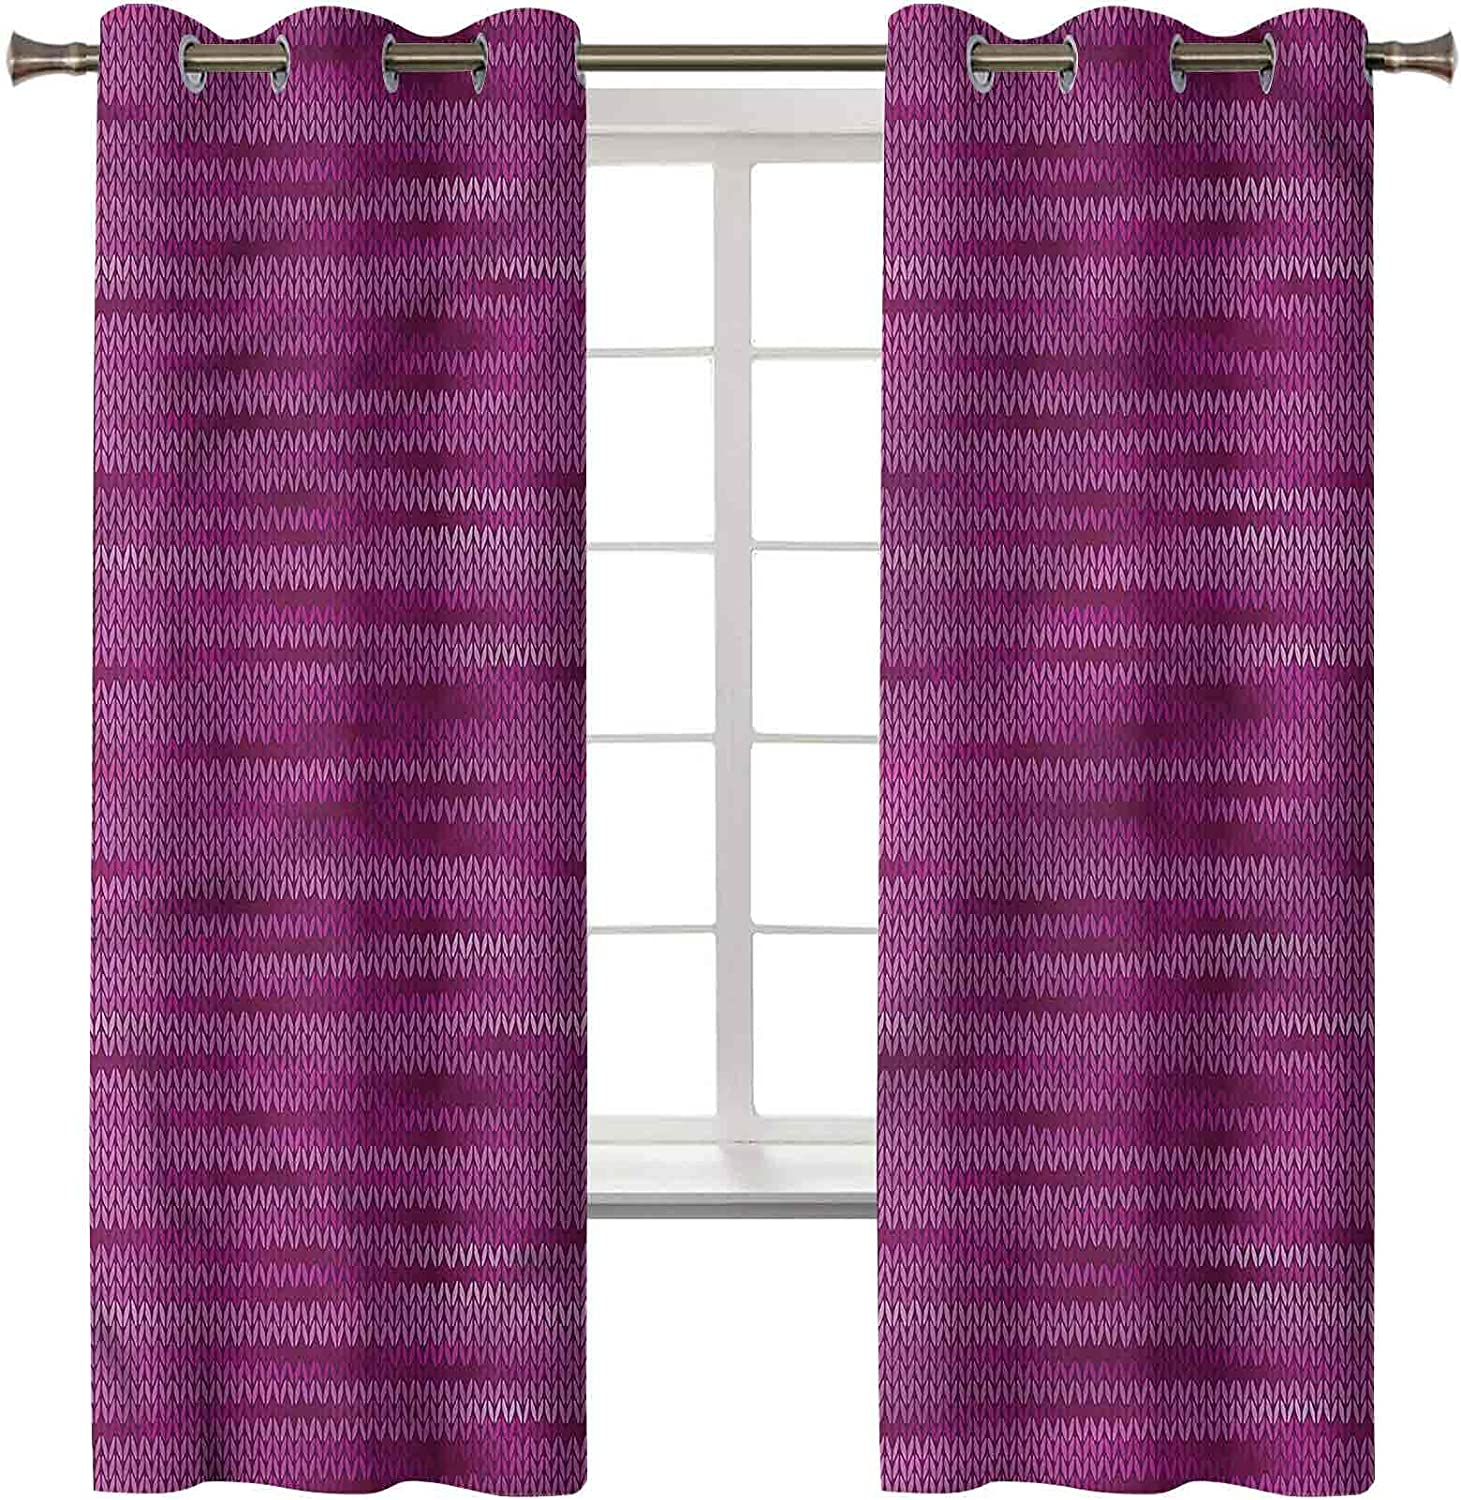 Magenta Curtains Drapes Set of 2 Panels 84 Inch Luxury C 42 x Houston Mall Same day shipping